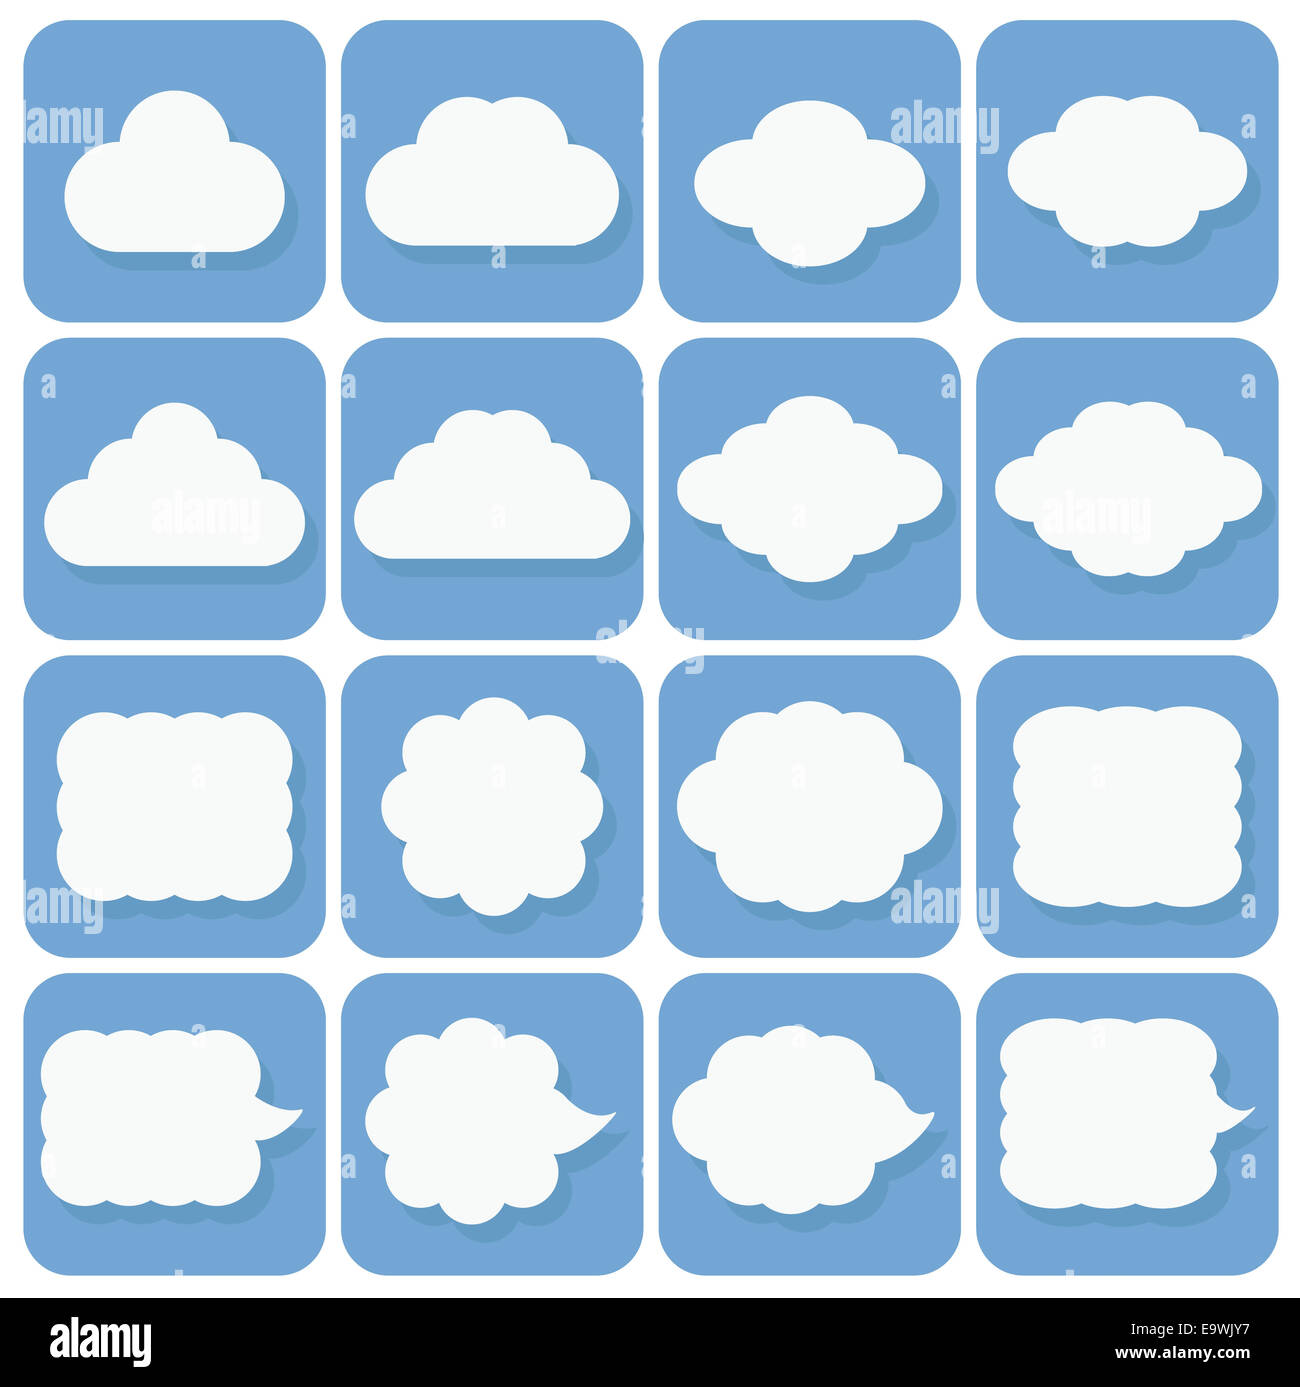 vector icon set, collection of cloud icons, white on blue background with dark blue shadows - Stock Image